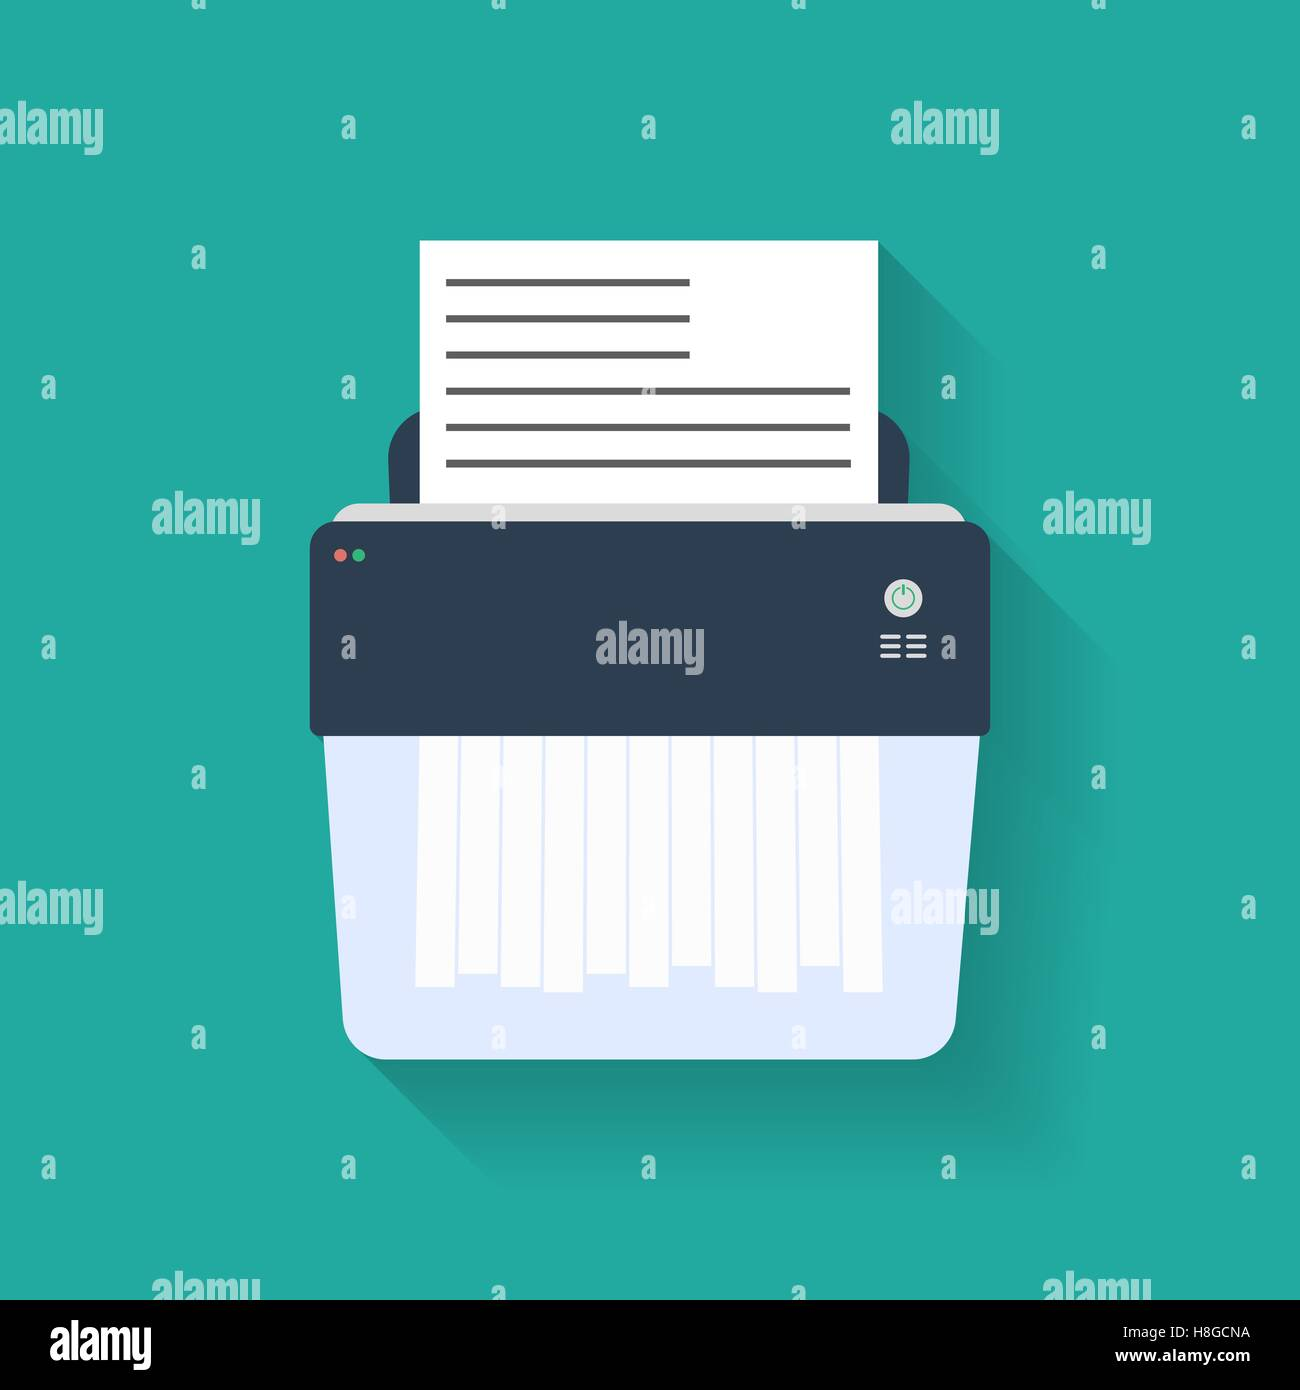 Icon of paper Shredder. Flat style - Stock Vector